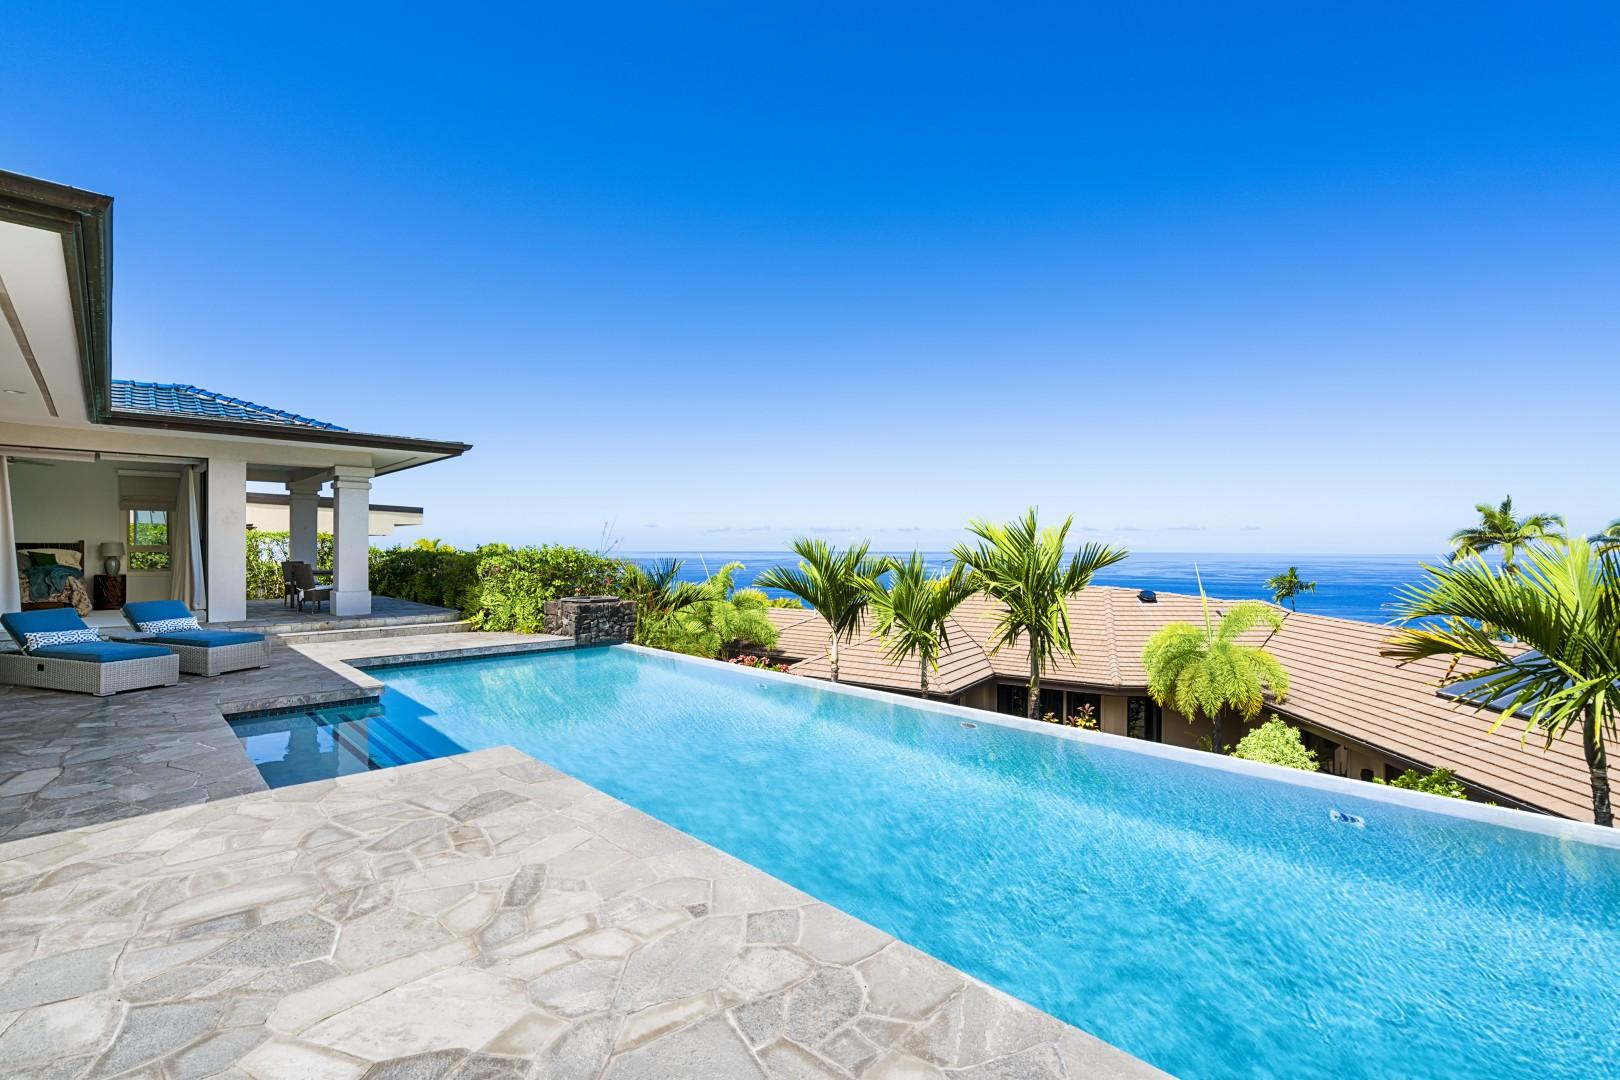 Large lap pool, perfect for exercise and fun!